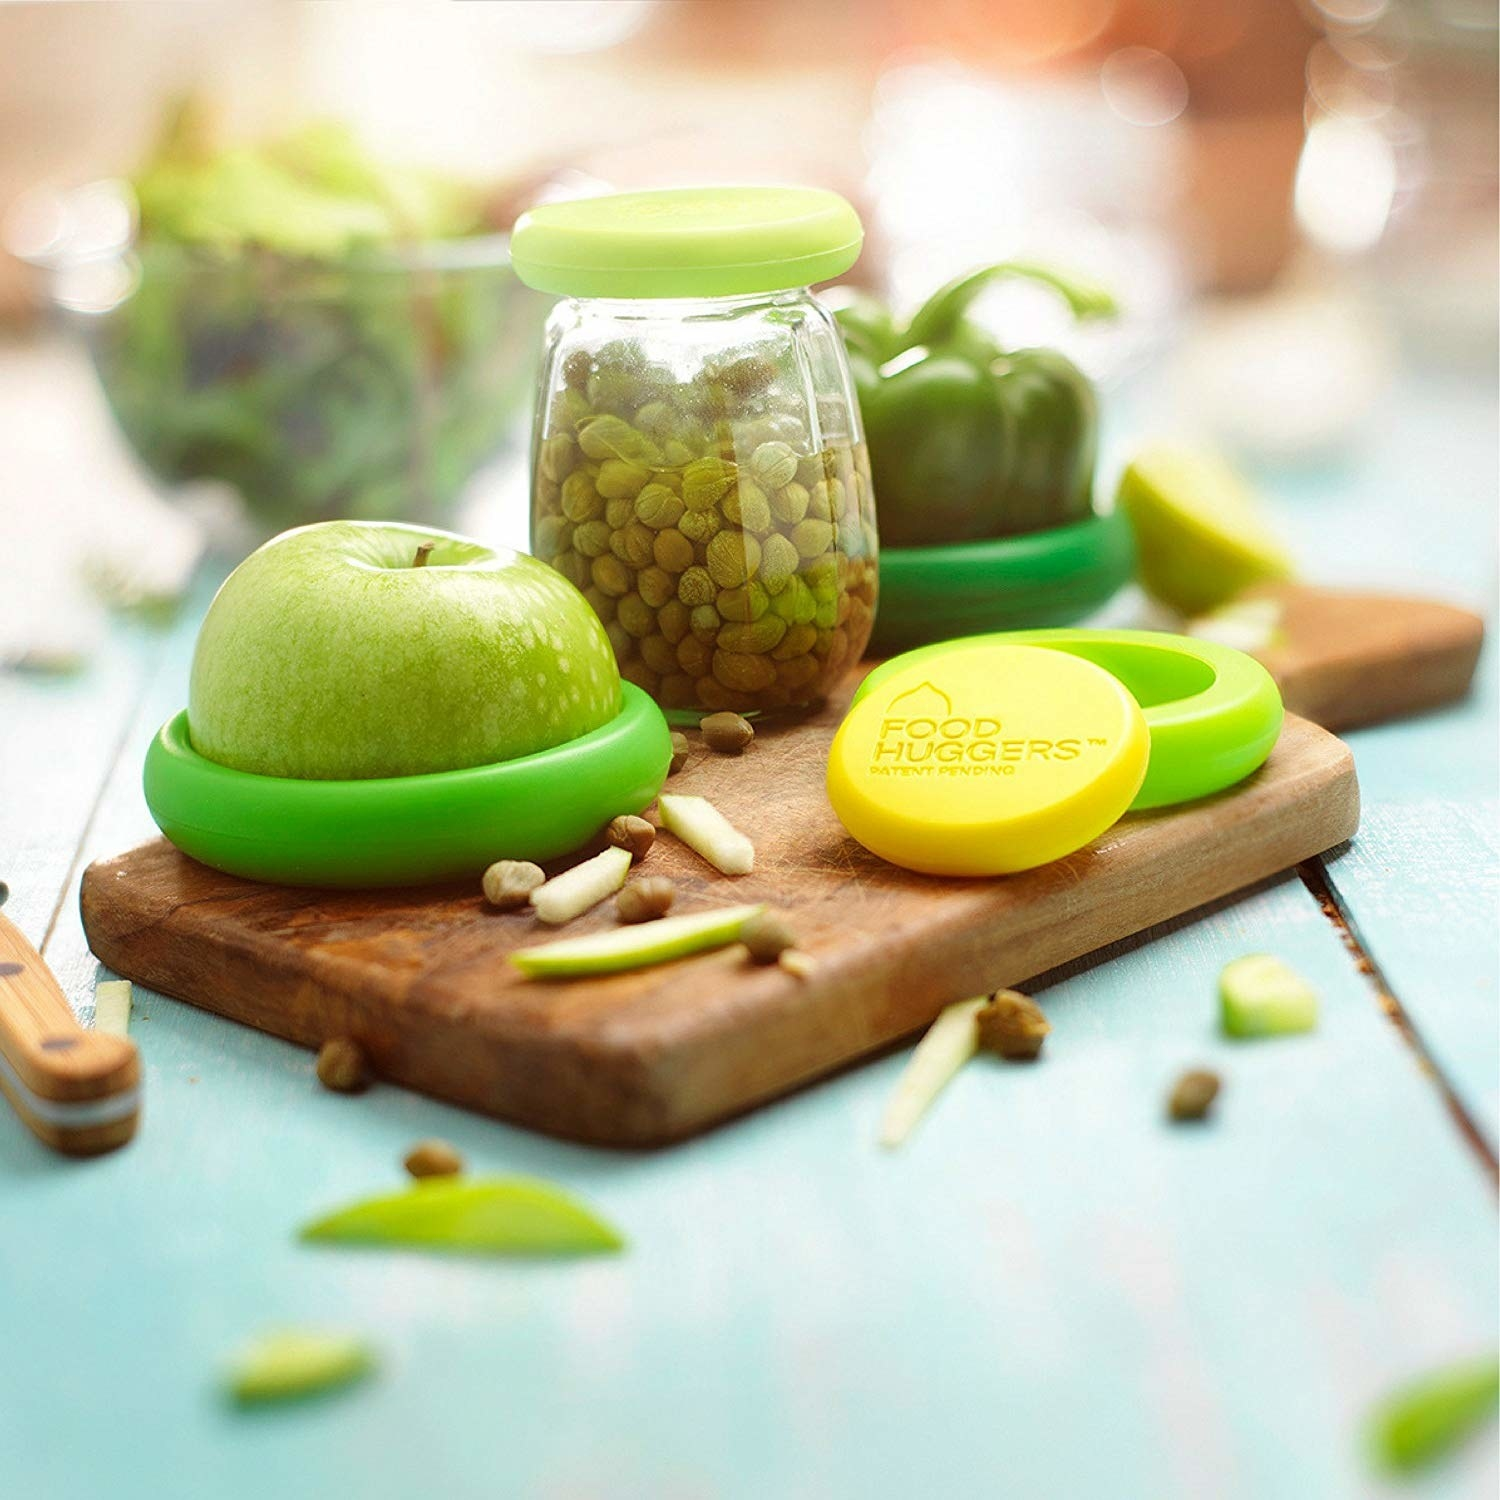 A jar, an apple, and a pepper covered with food huggers